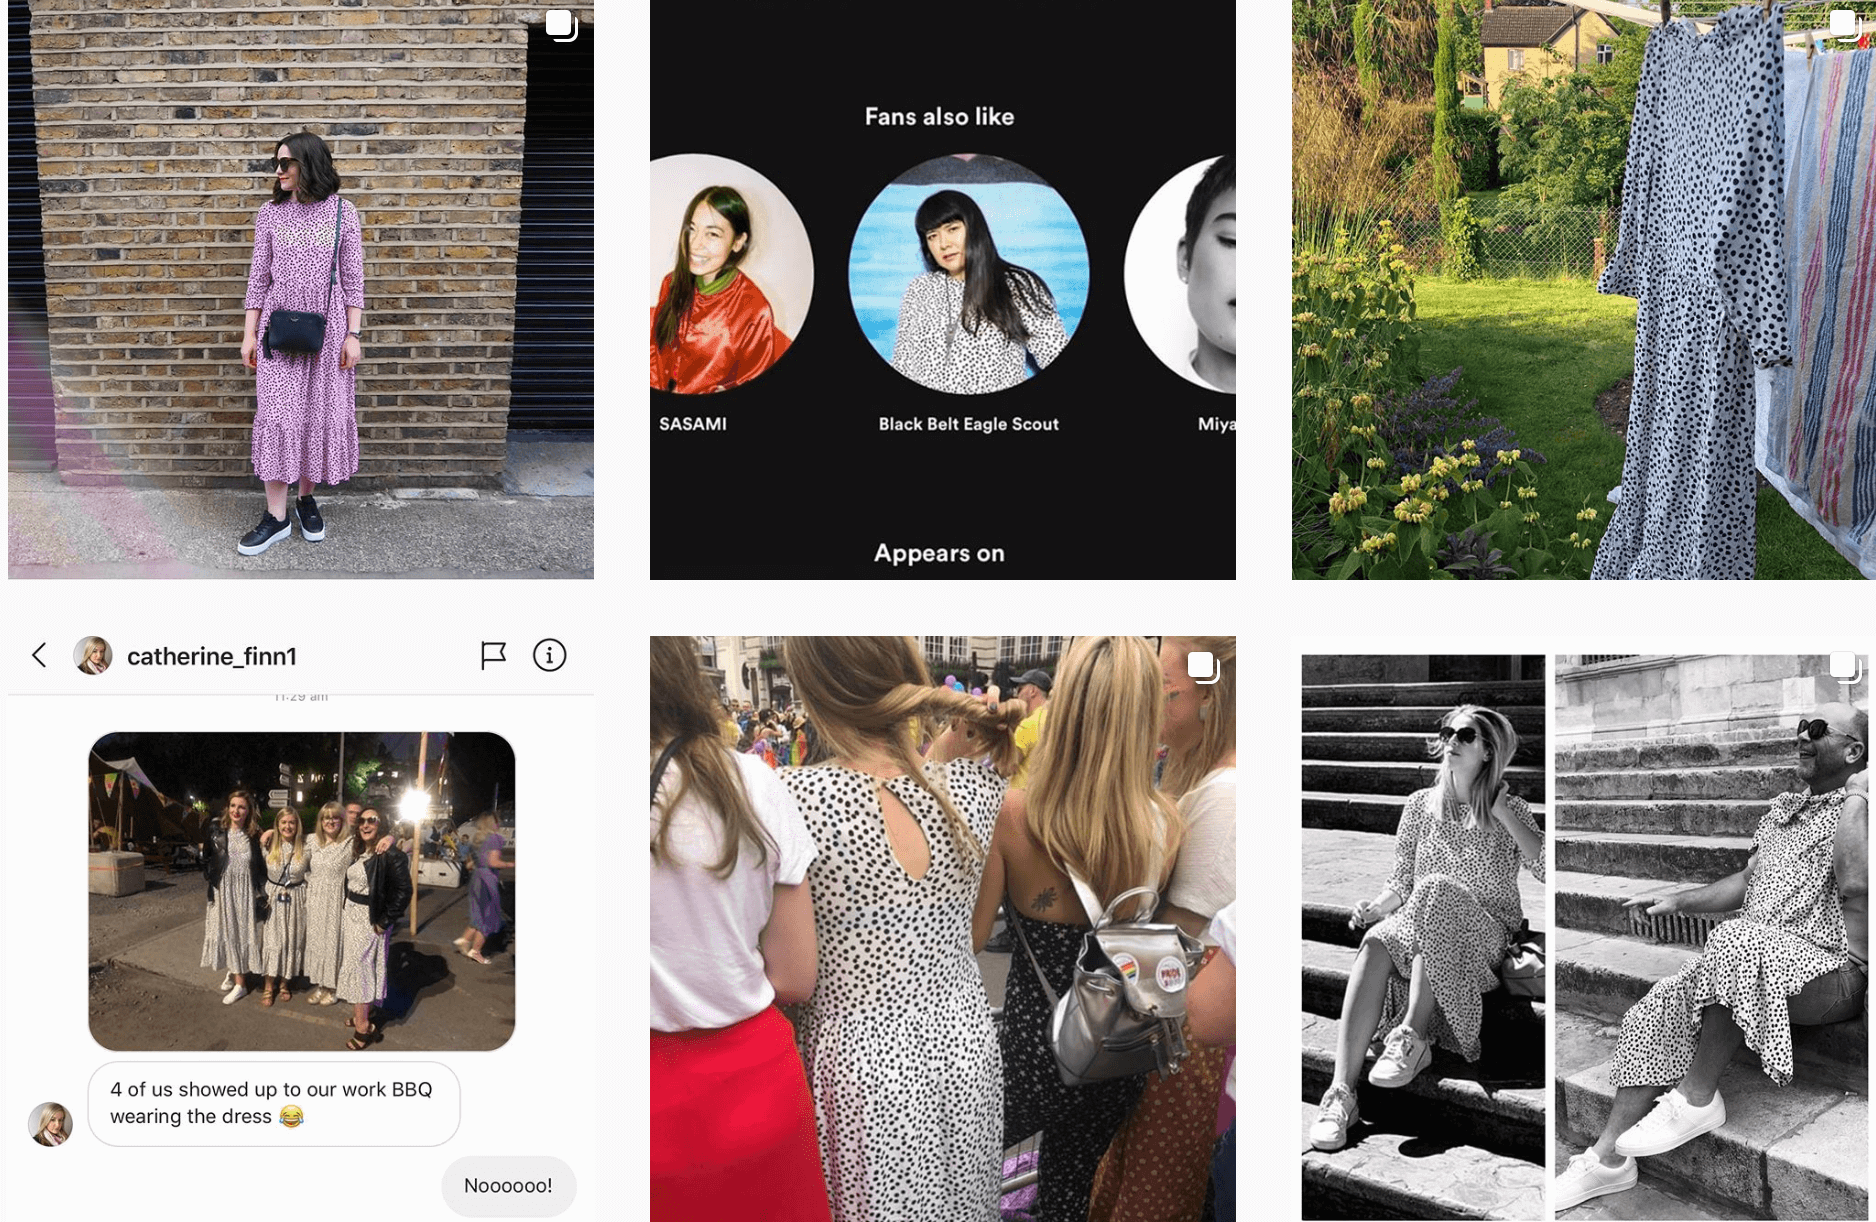 Instagram accounts that track sightings of popular clothing items in the wild are on the rise. @hot4thespot